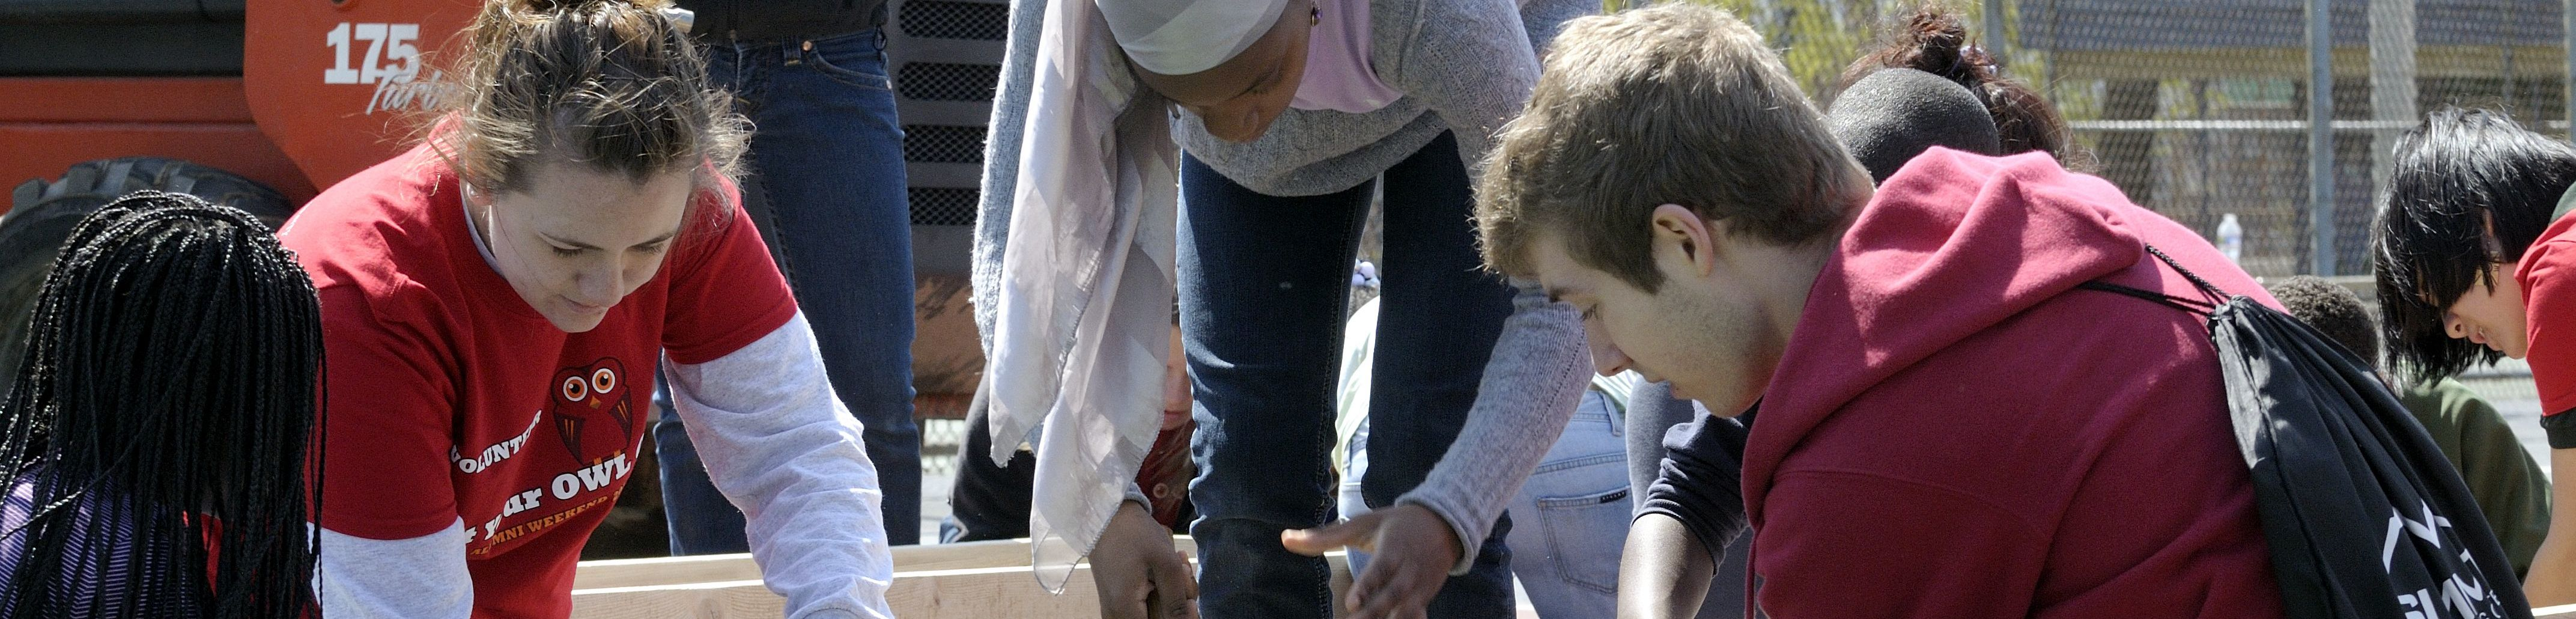 Students participating in community service